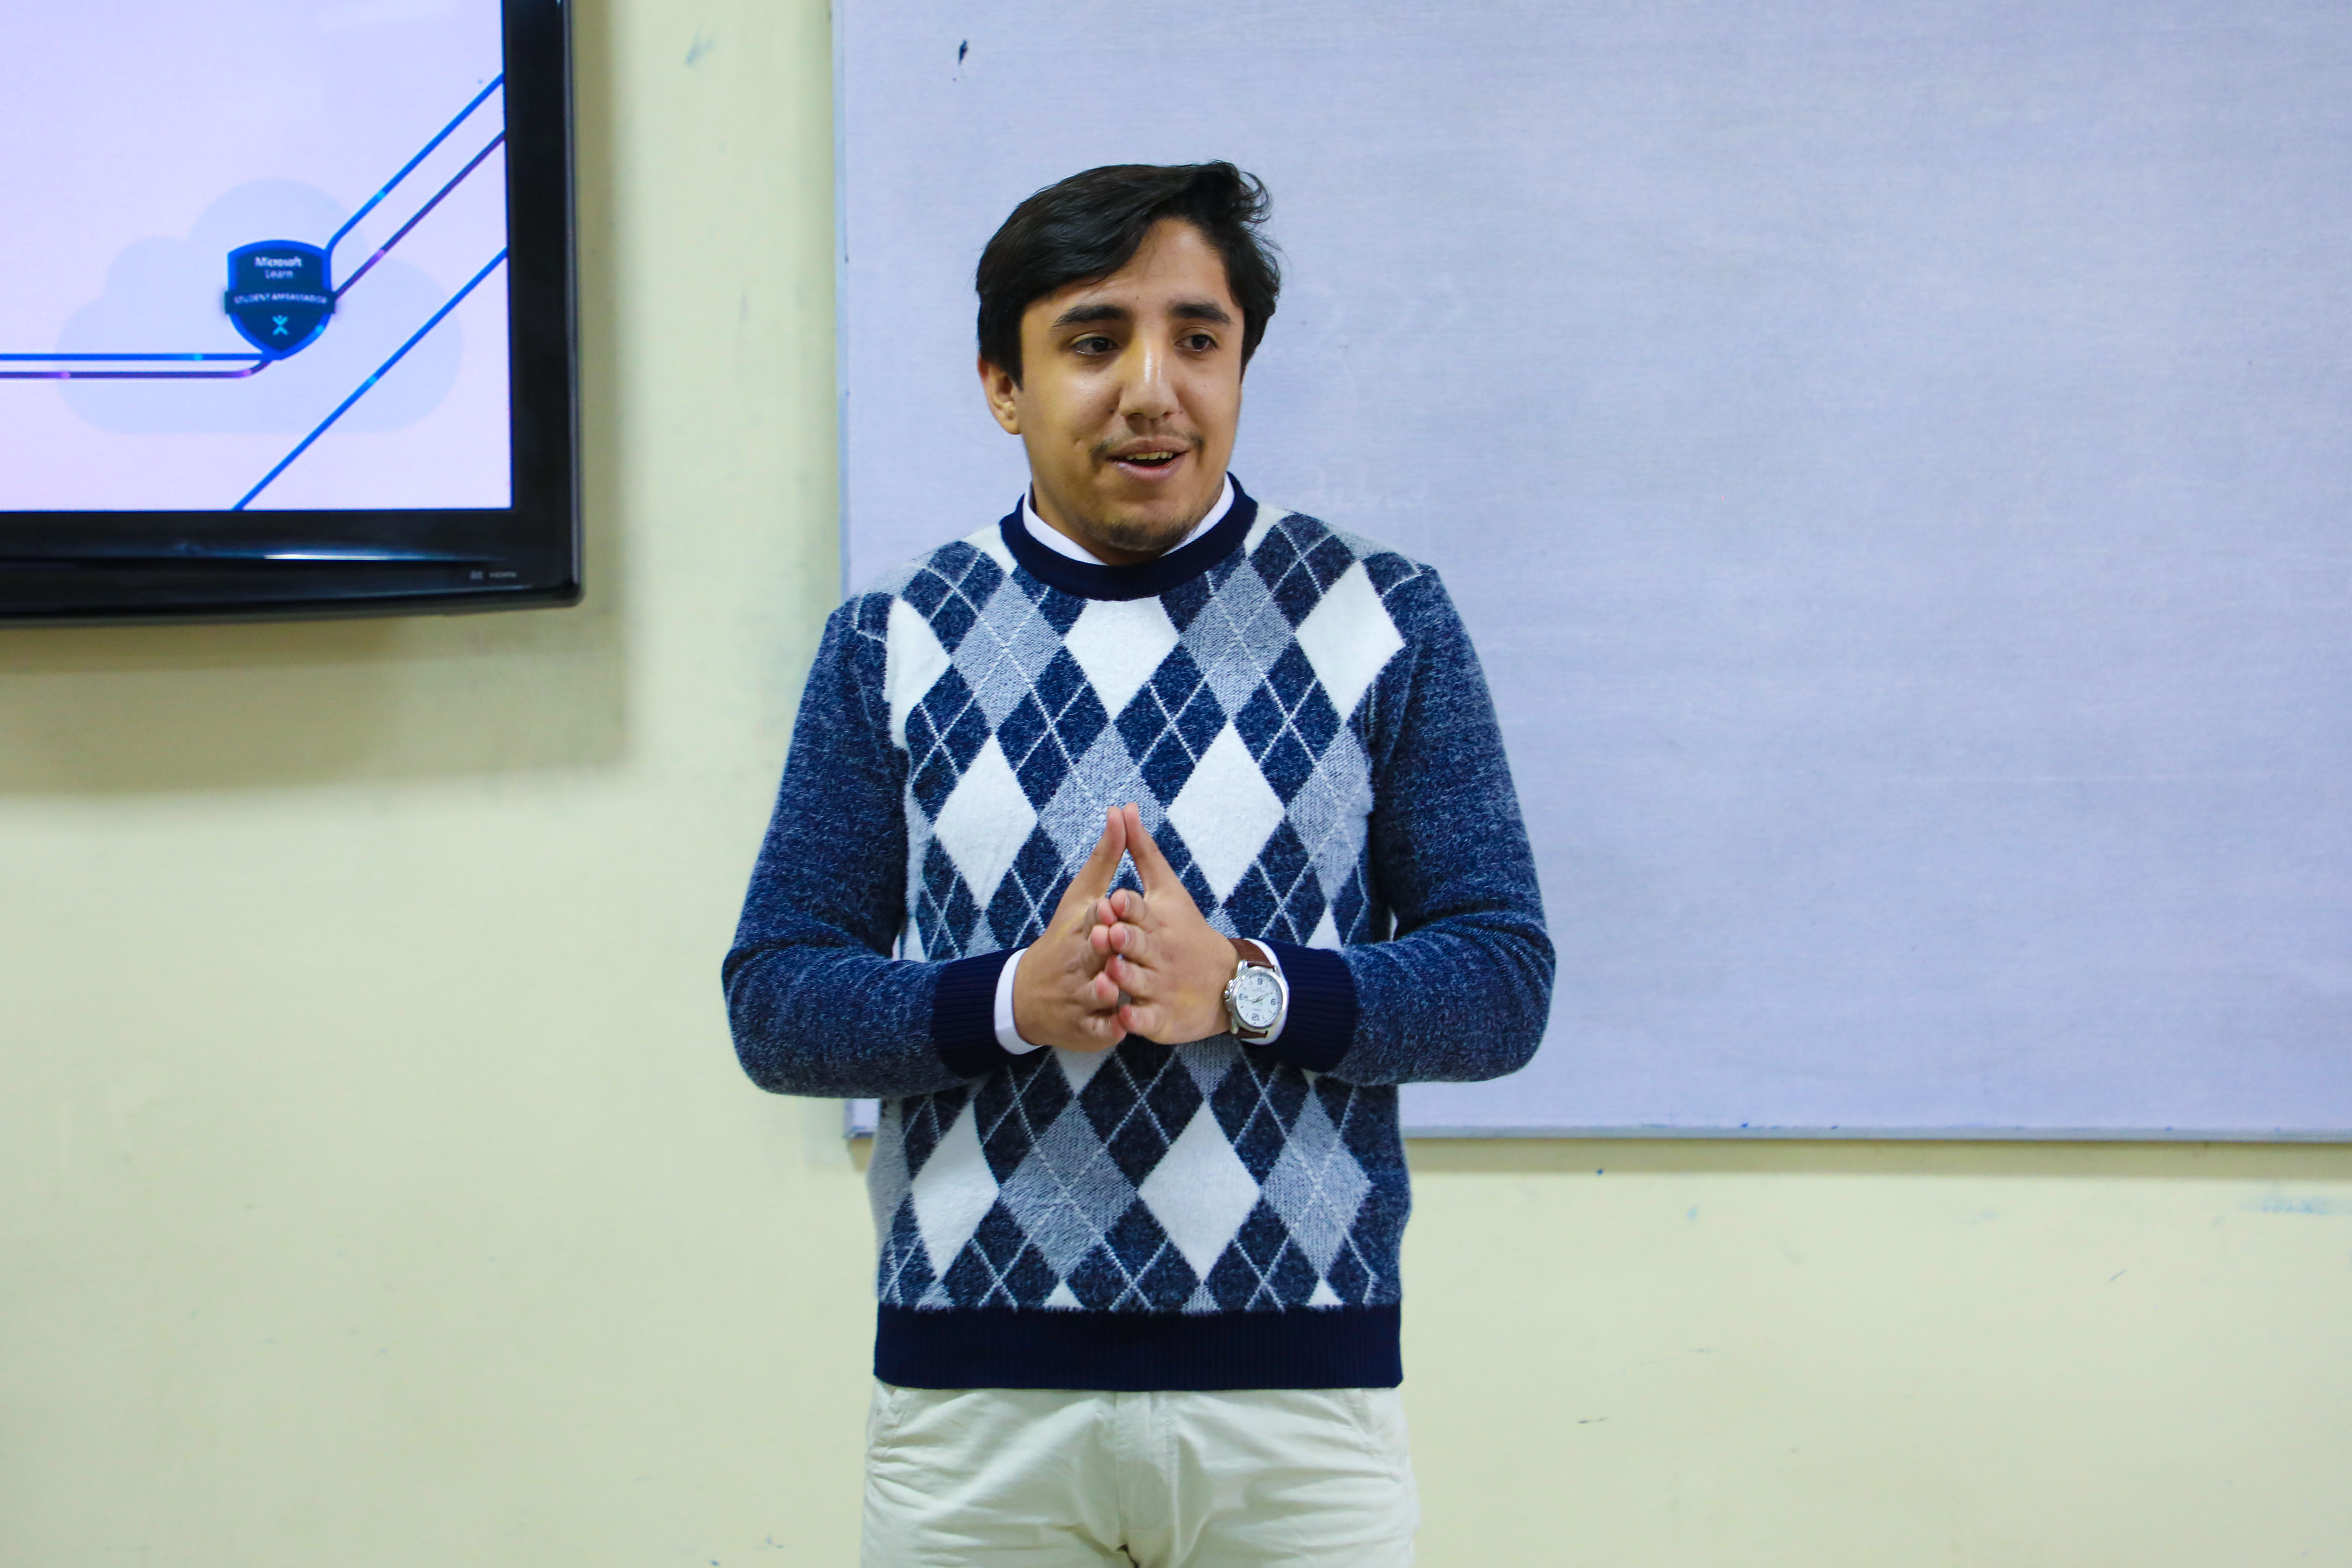 Kardan University's CISCO Lab Organizes a Seminar on Microsoft Learn Student Ambassador Program for BCS Students from Various Universities across Kabul